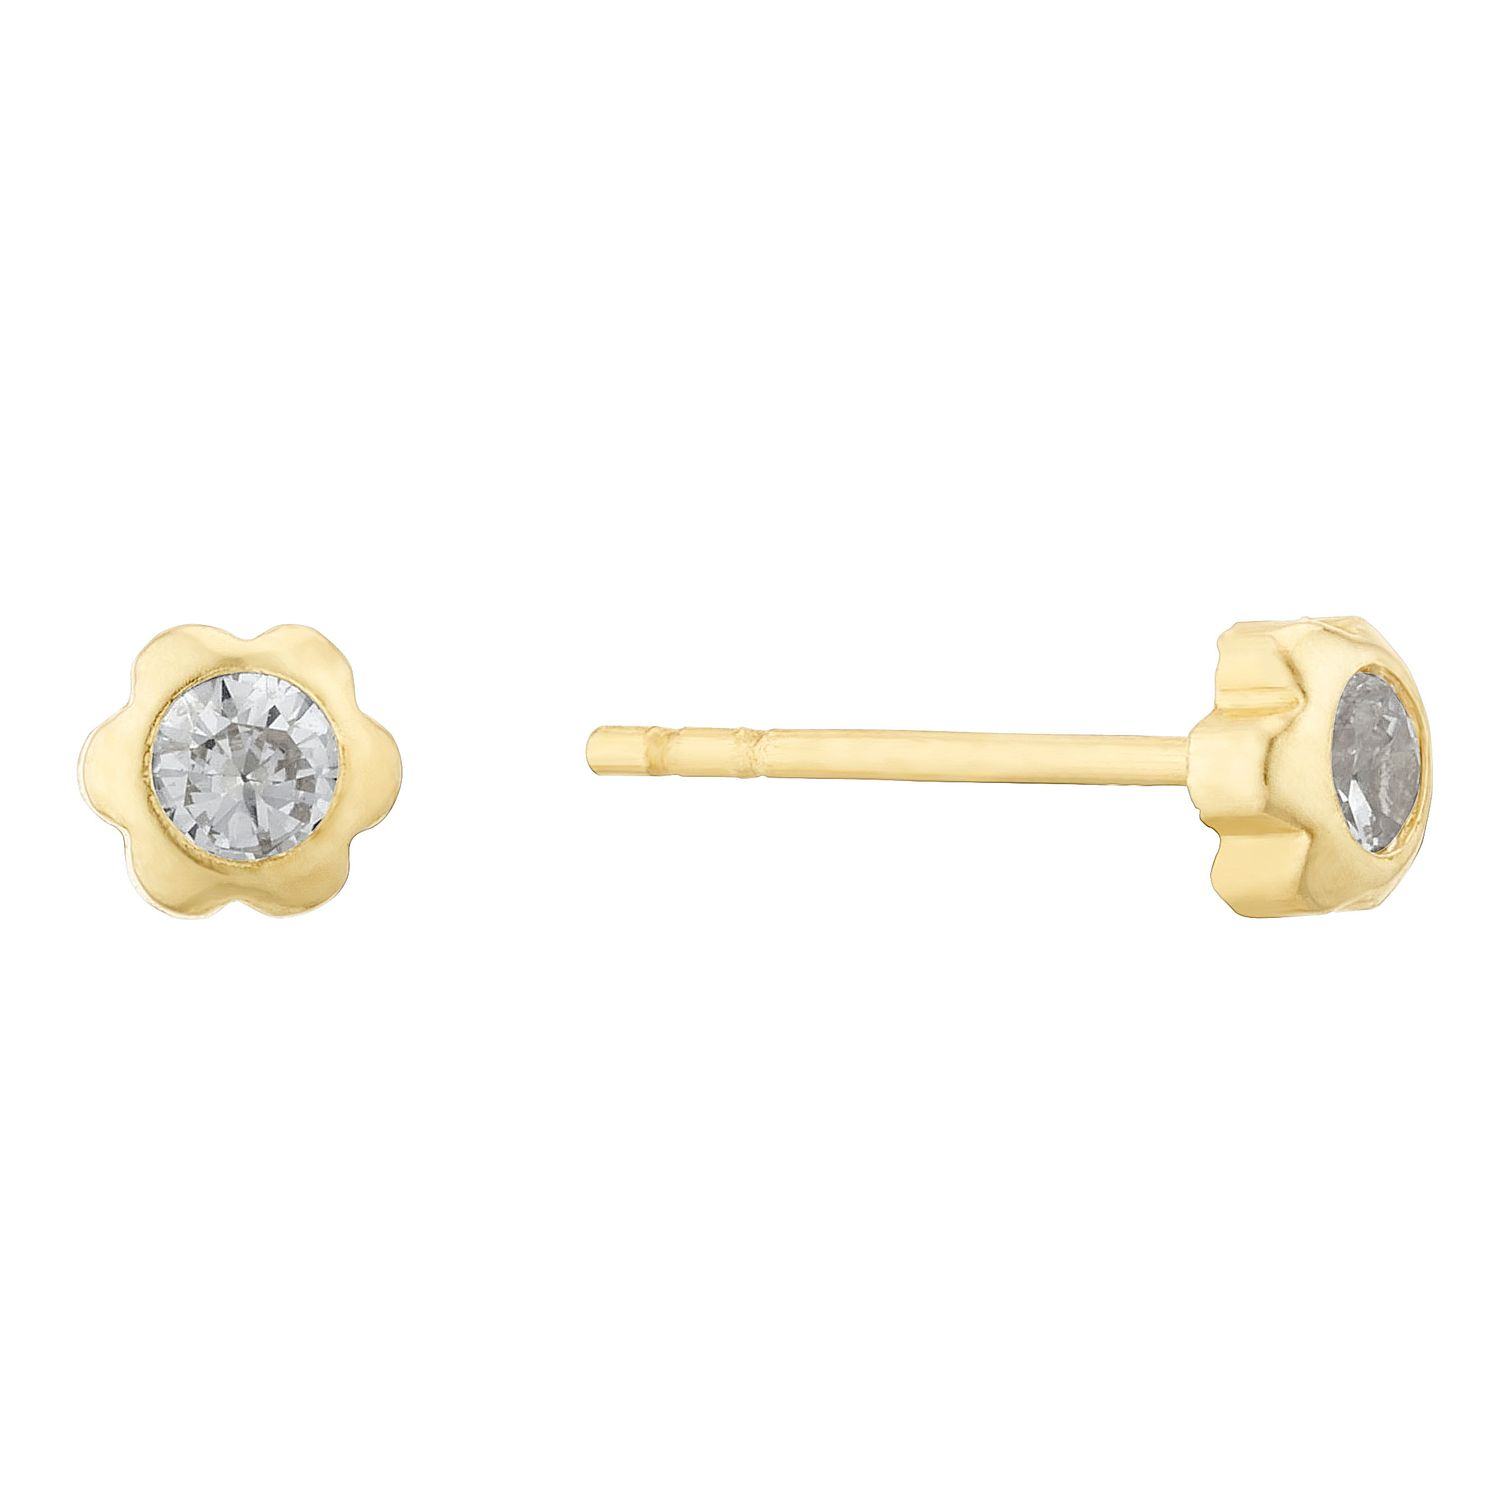 Kids' 9ct Yellow Gold Cubic Zirconia Flower Stud Earrings - Product number 3133494